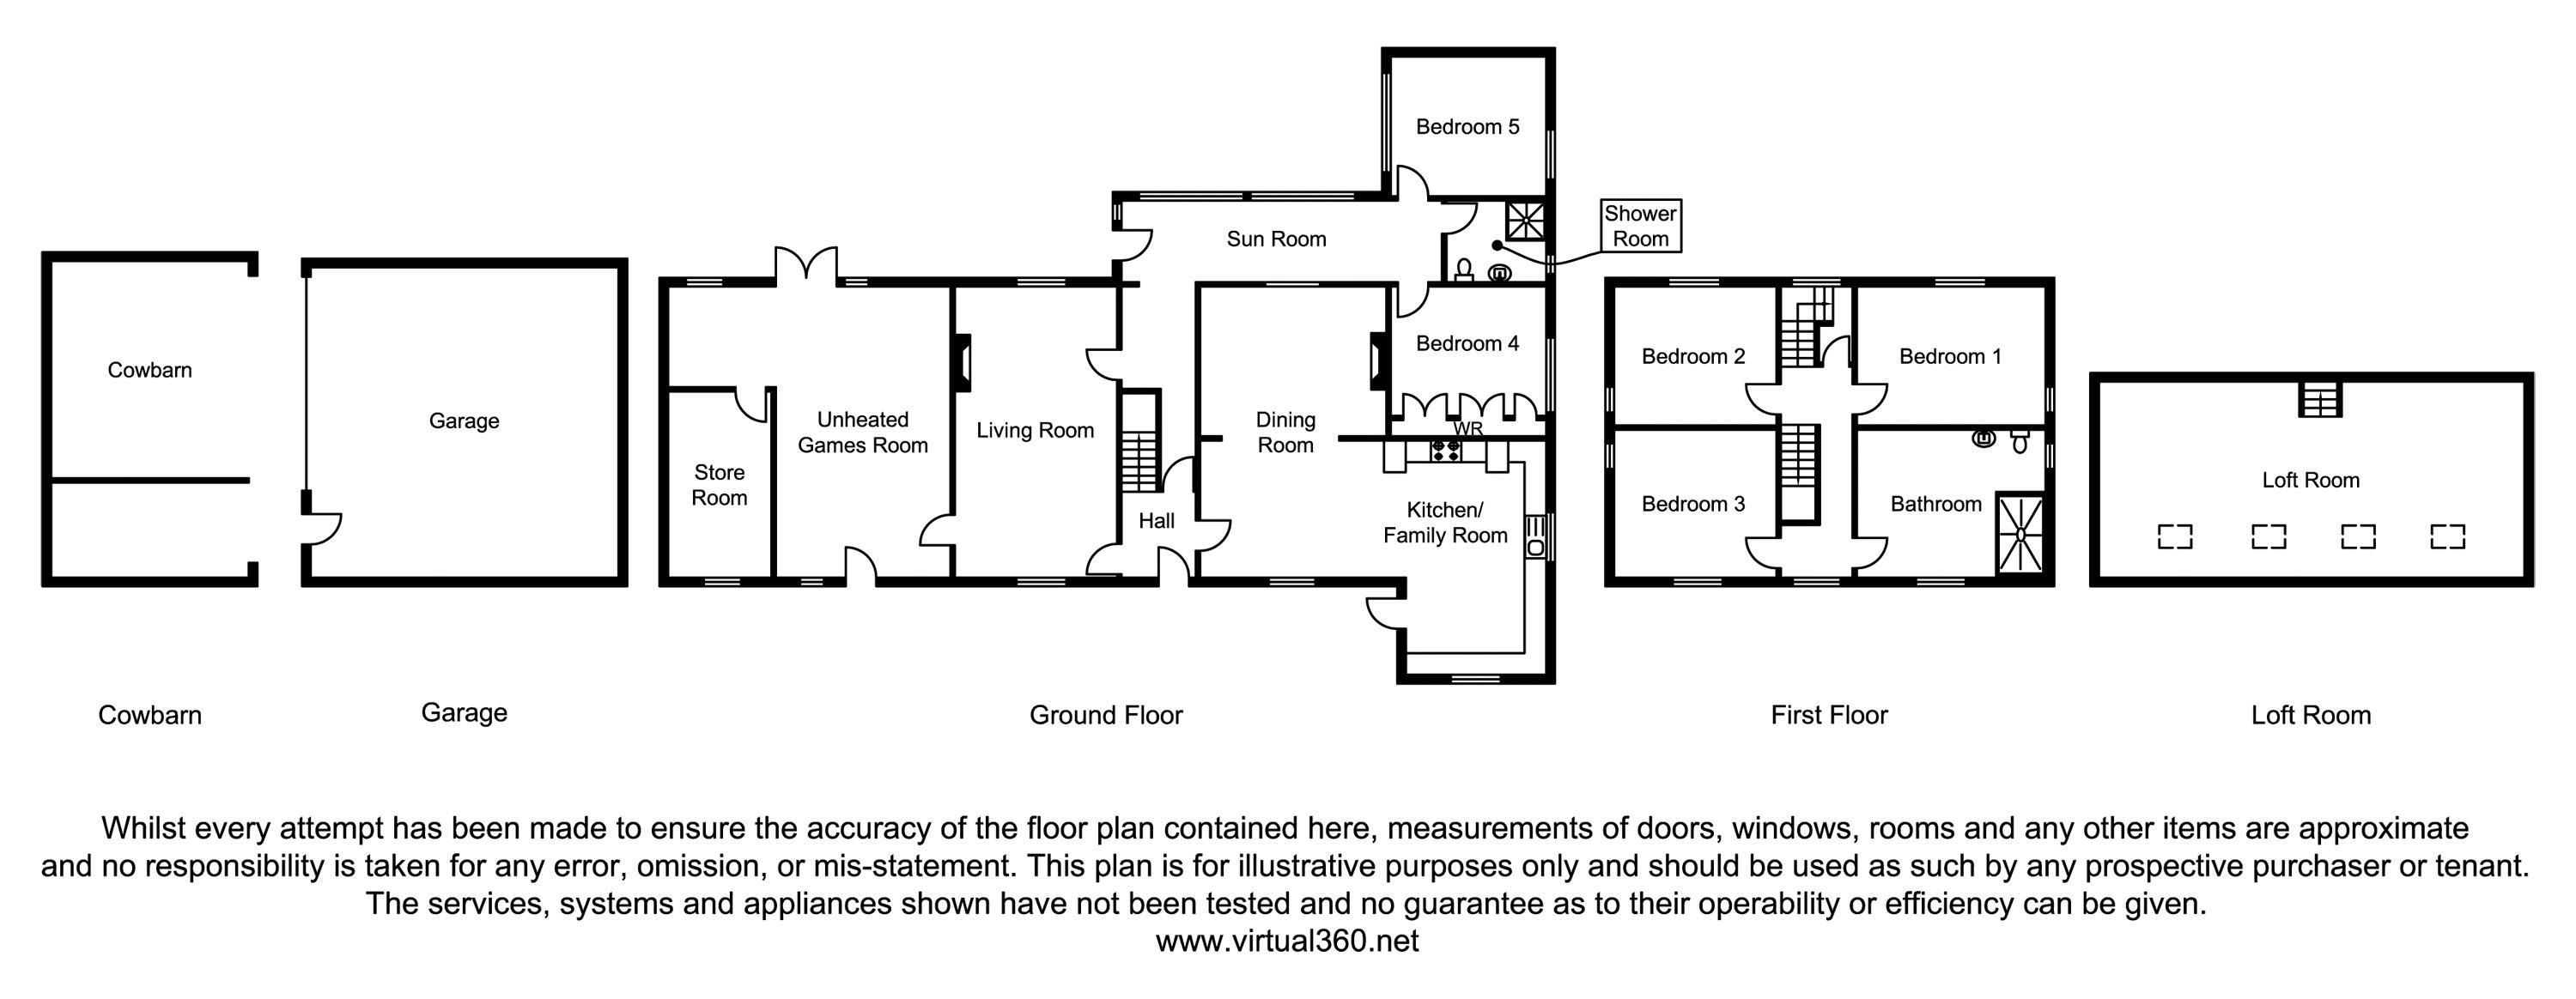 Glen Farm, Llanddarog road, Carmarthen floor plan